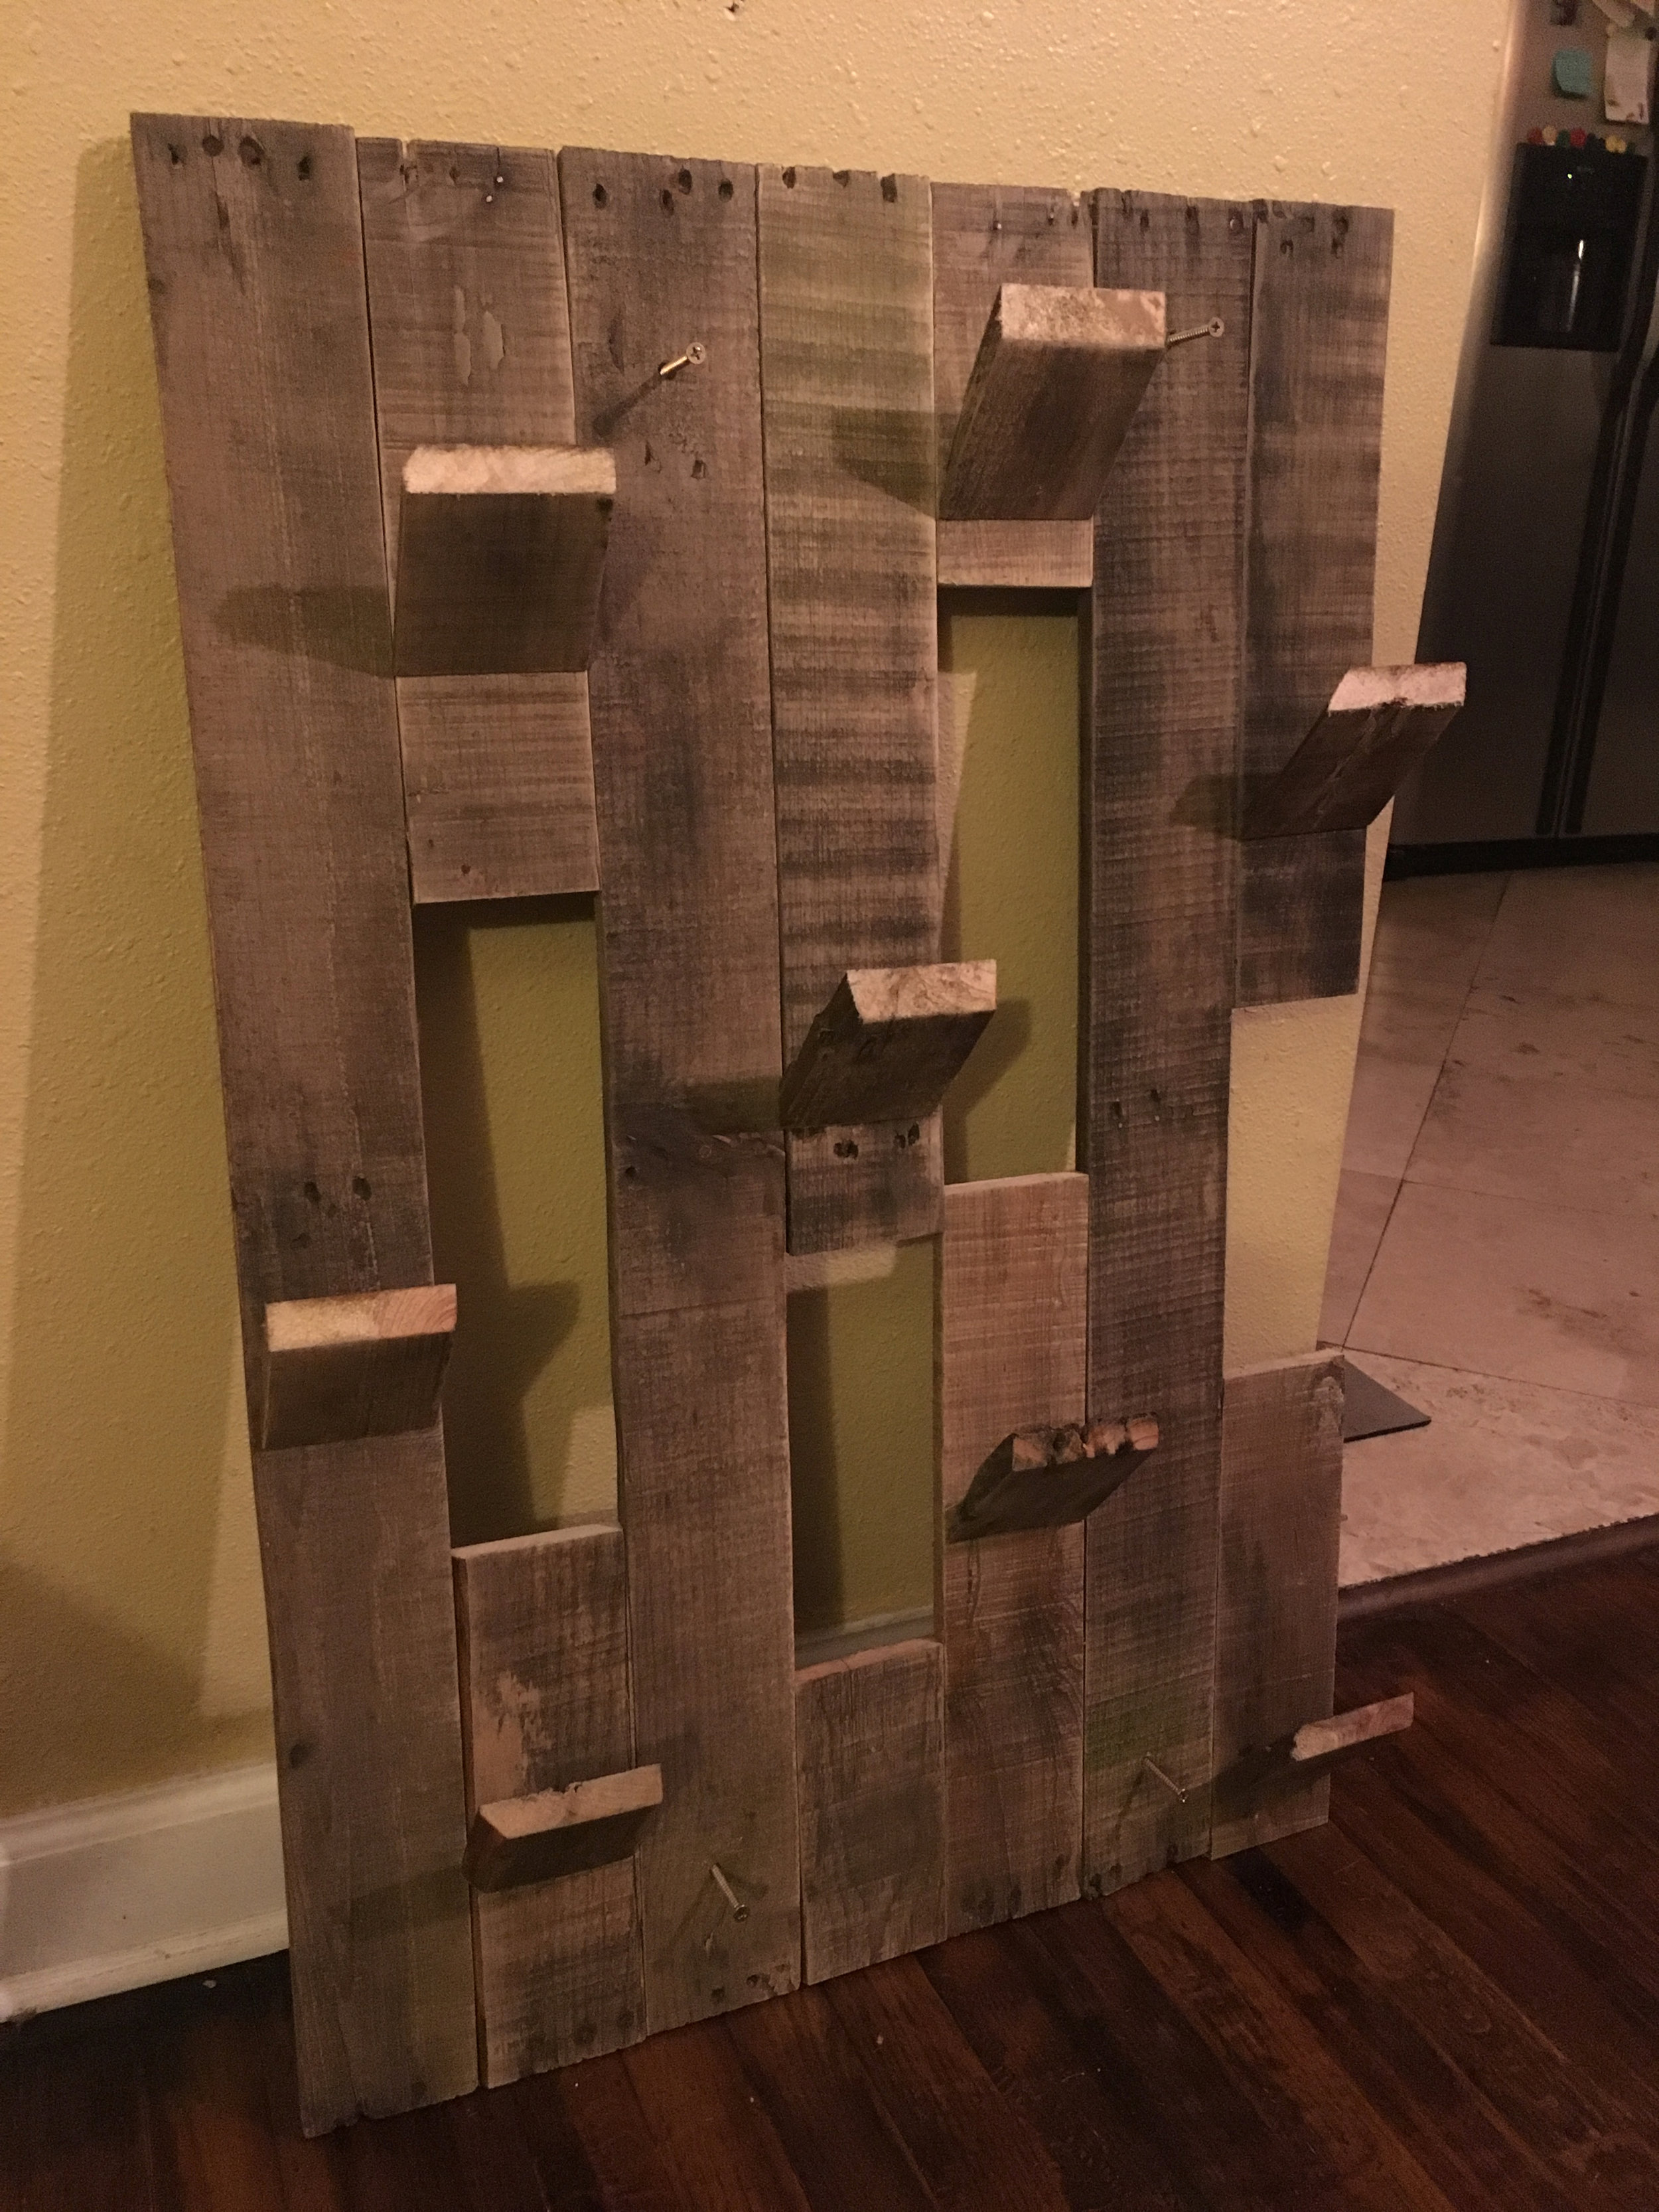 8 Bottle Wall Wine Holder - Pallet Wood